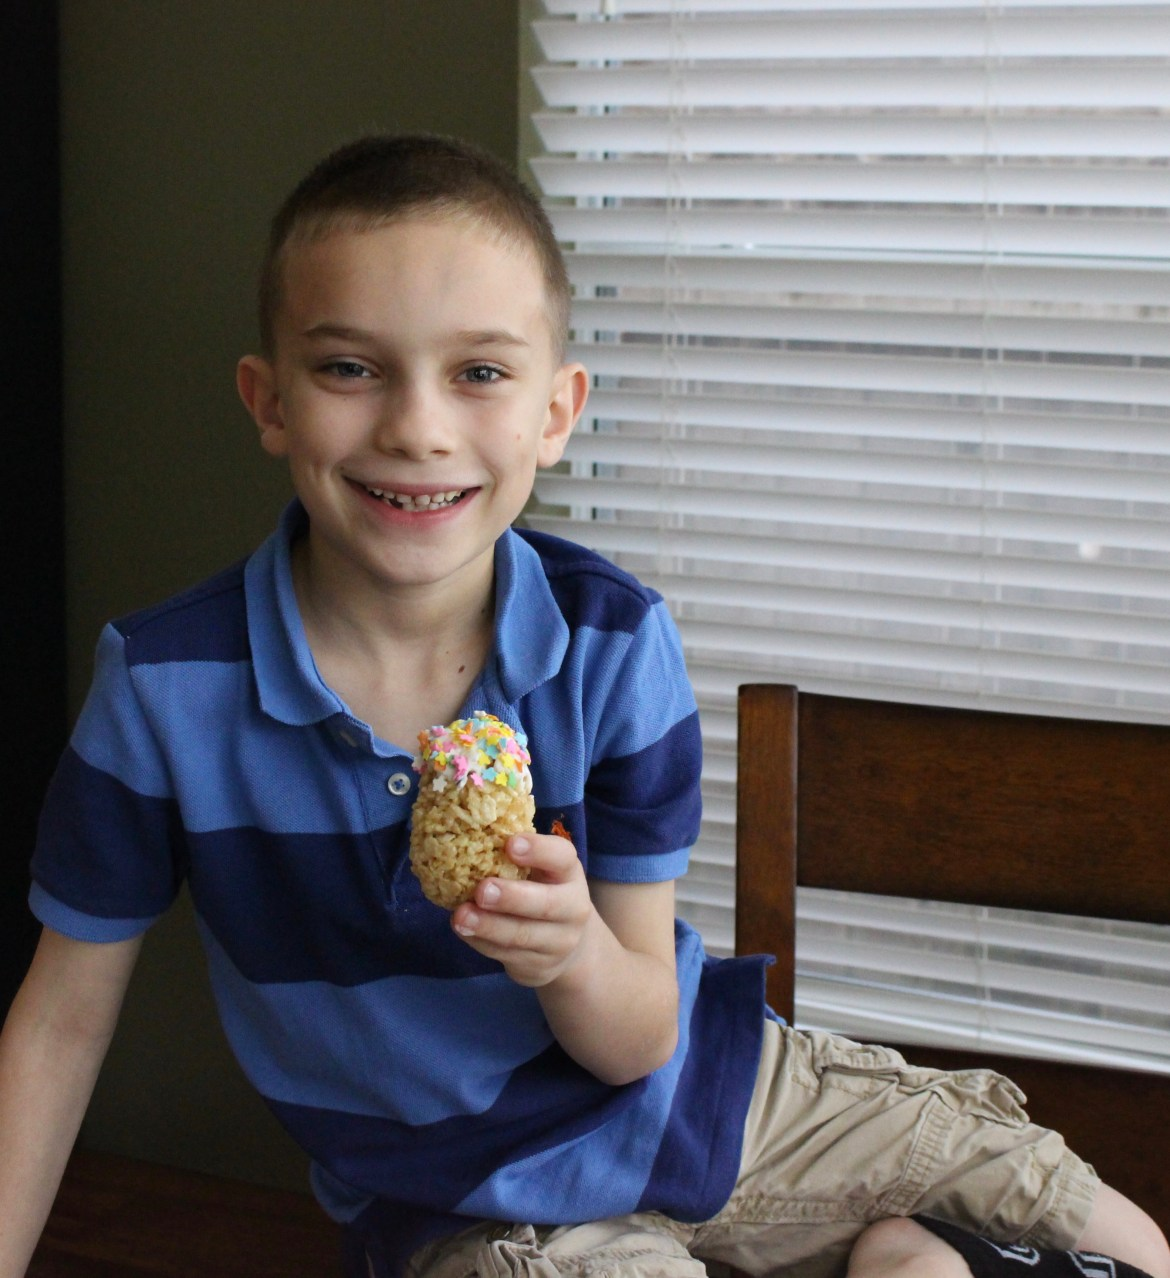 Parker showing his decorated Dipped Easter Egg